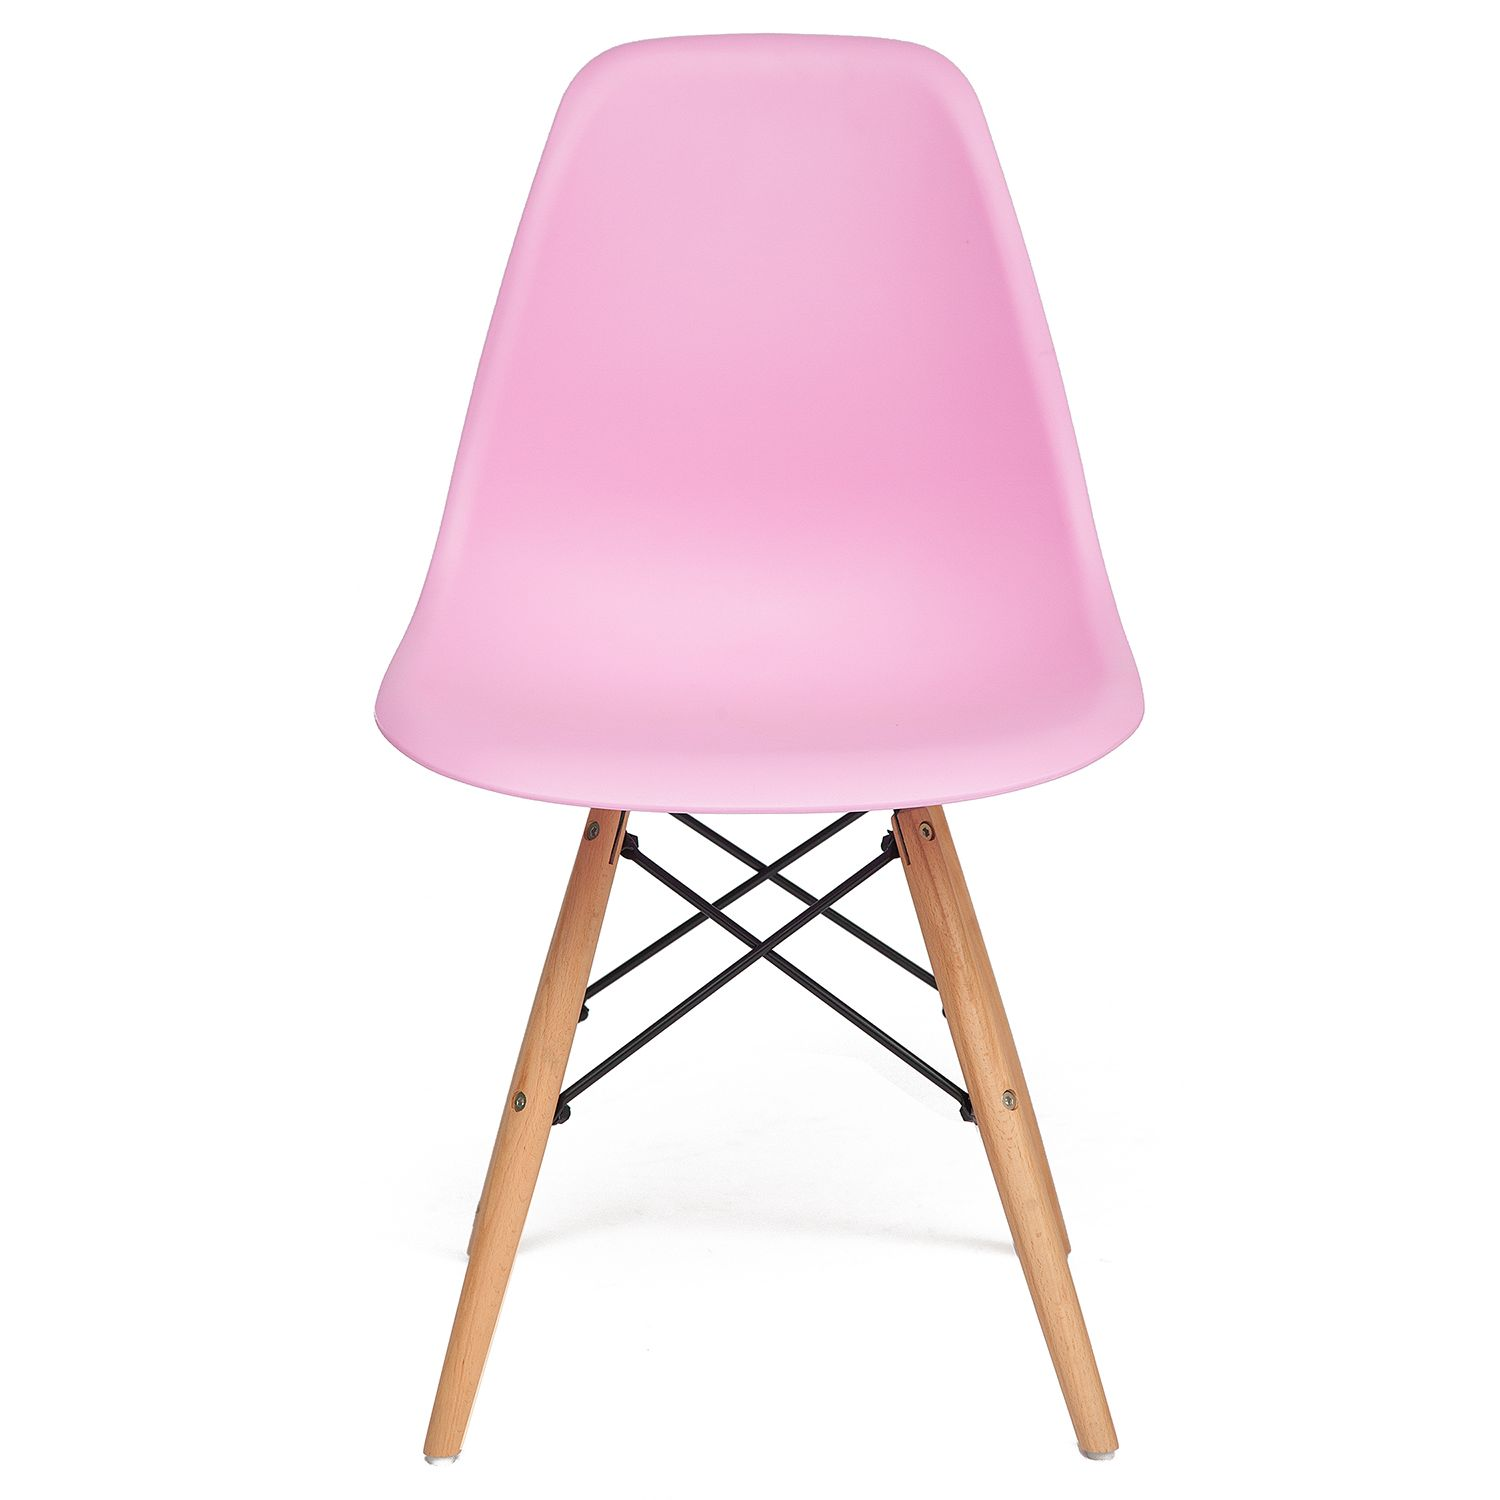 Стул Secret De Maison Tolix-Eames Cindy Eames 001 light pink